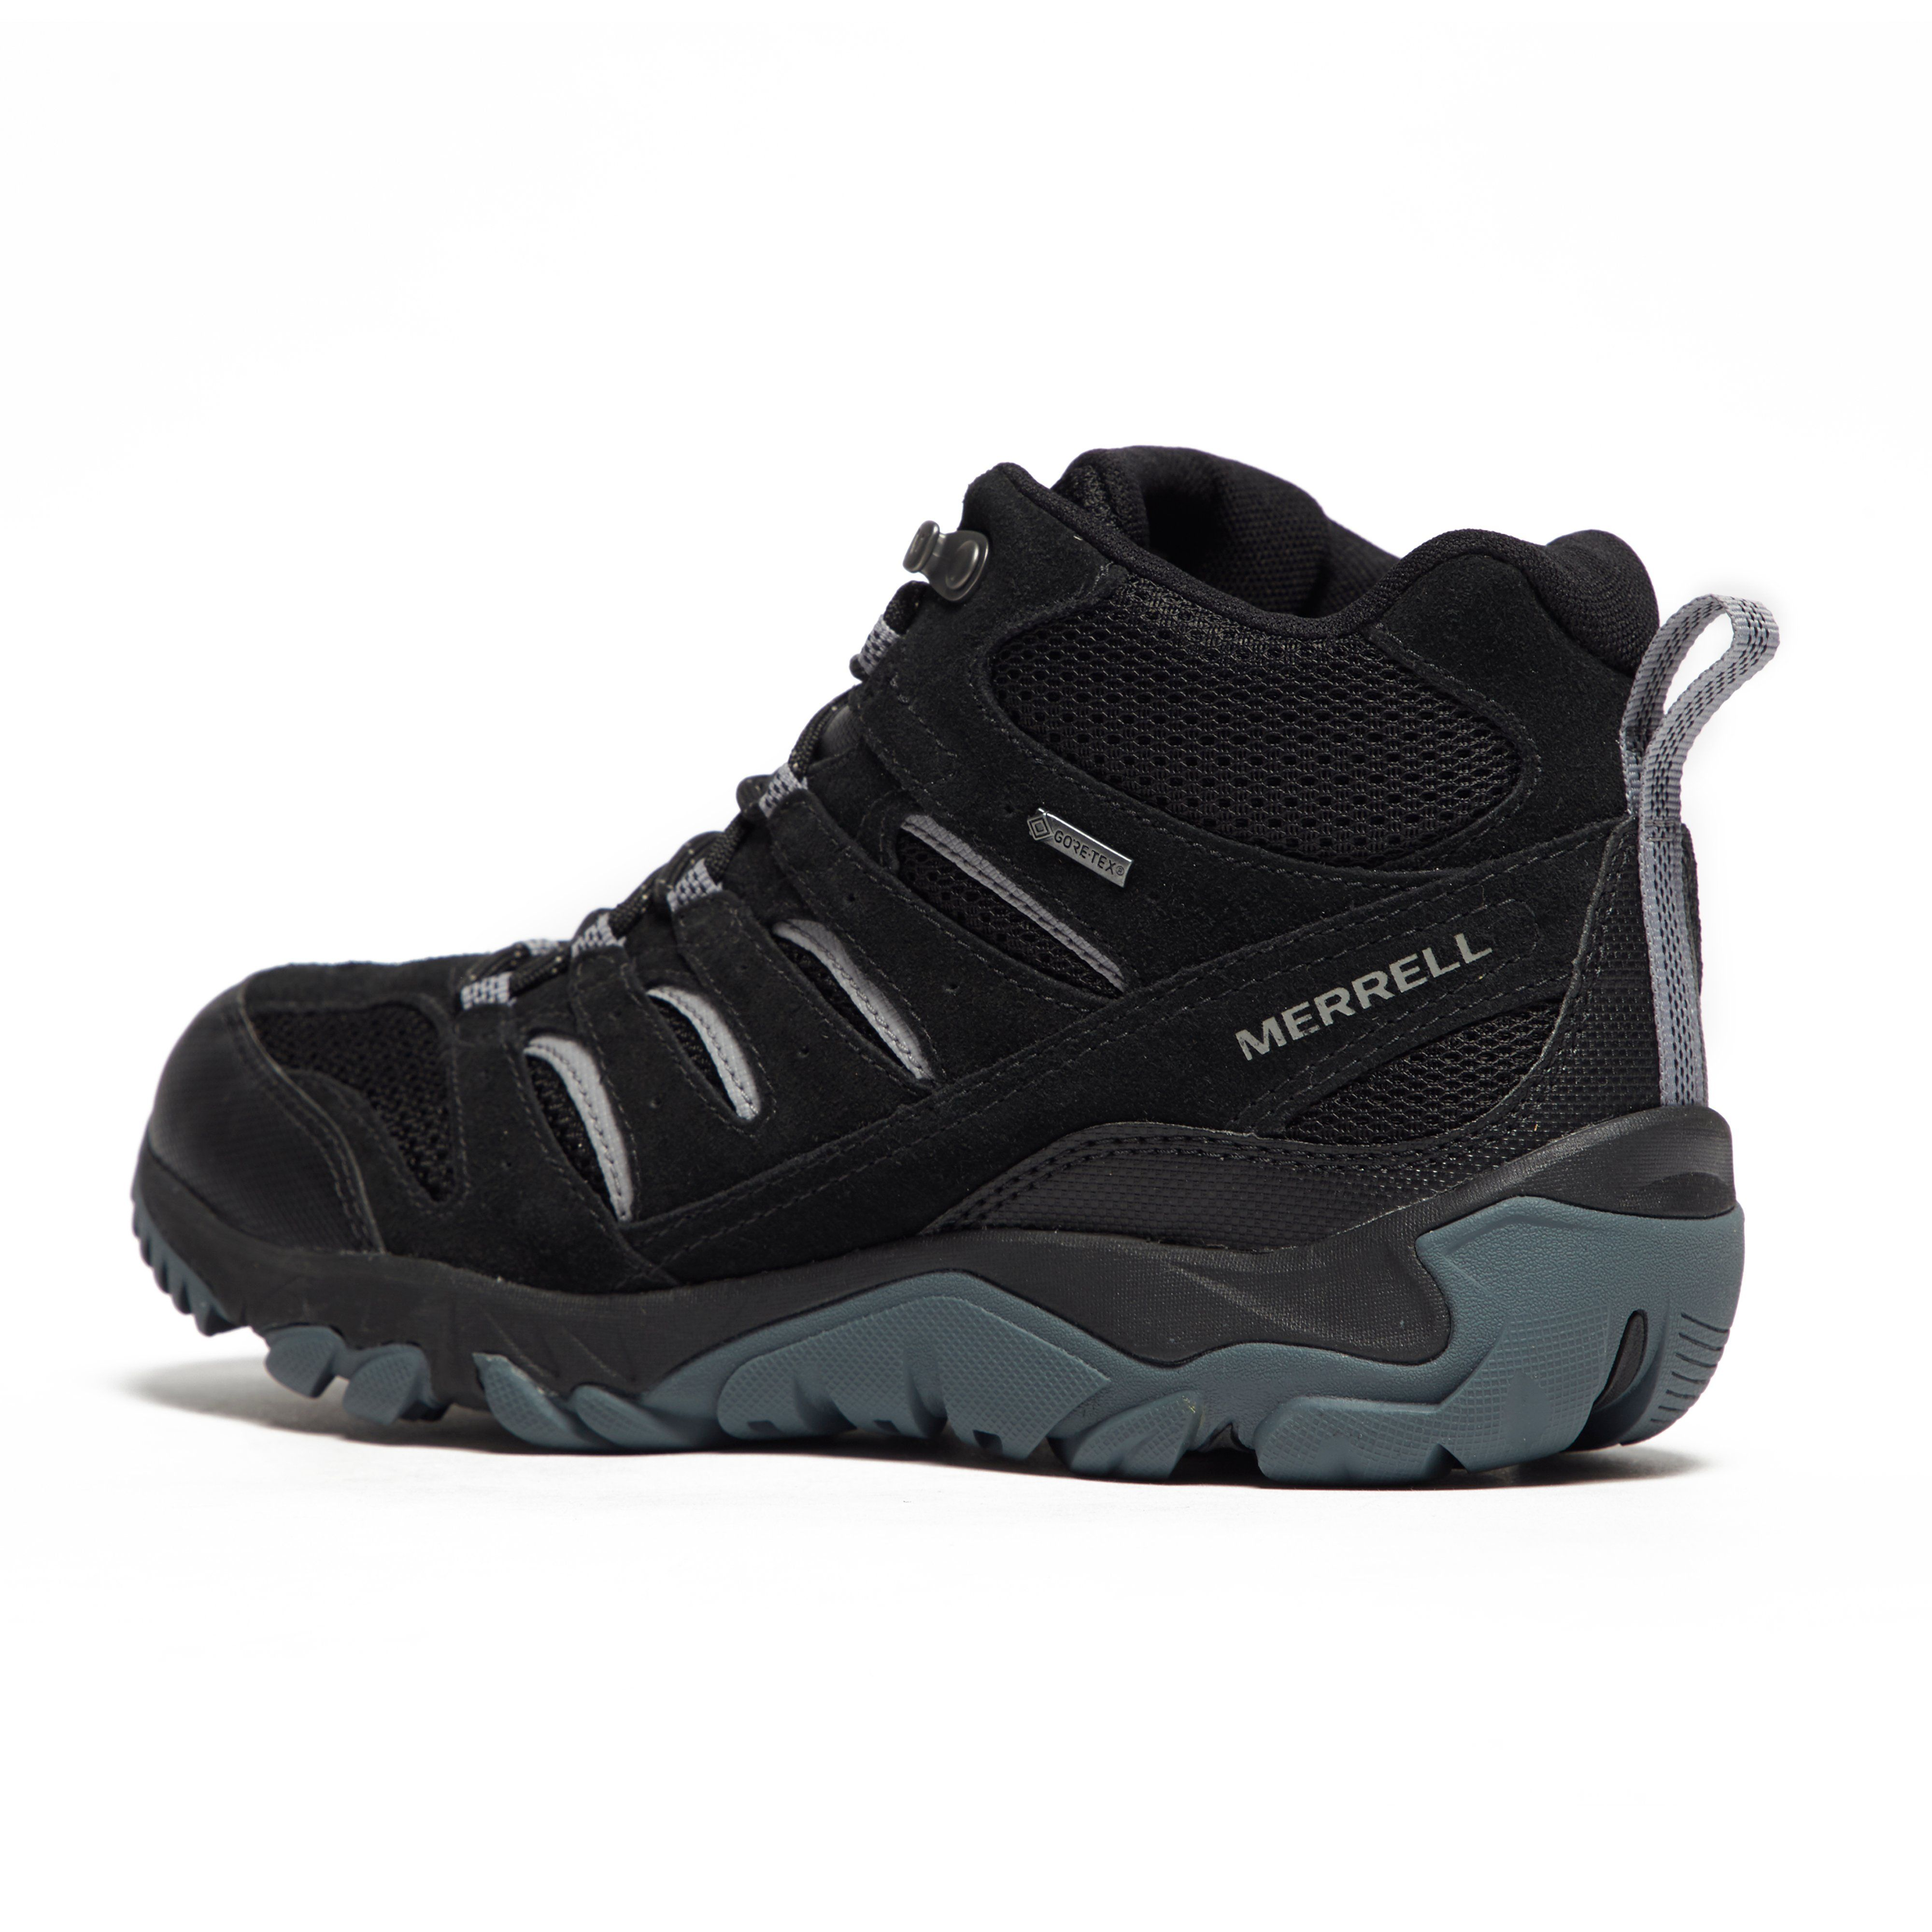 Merrell White Pine Mid Ventilator GTX Men's Walking Boots